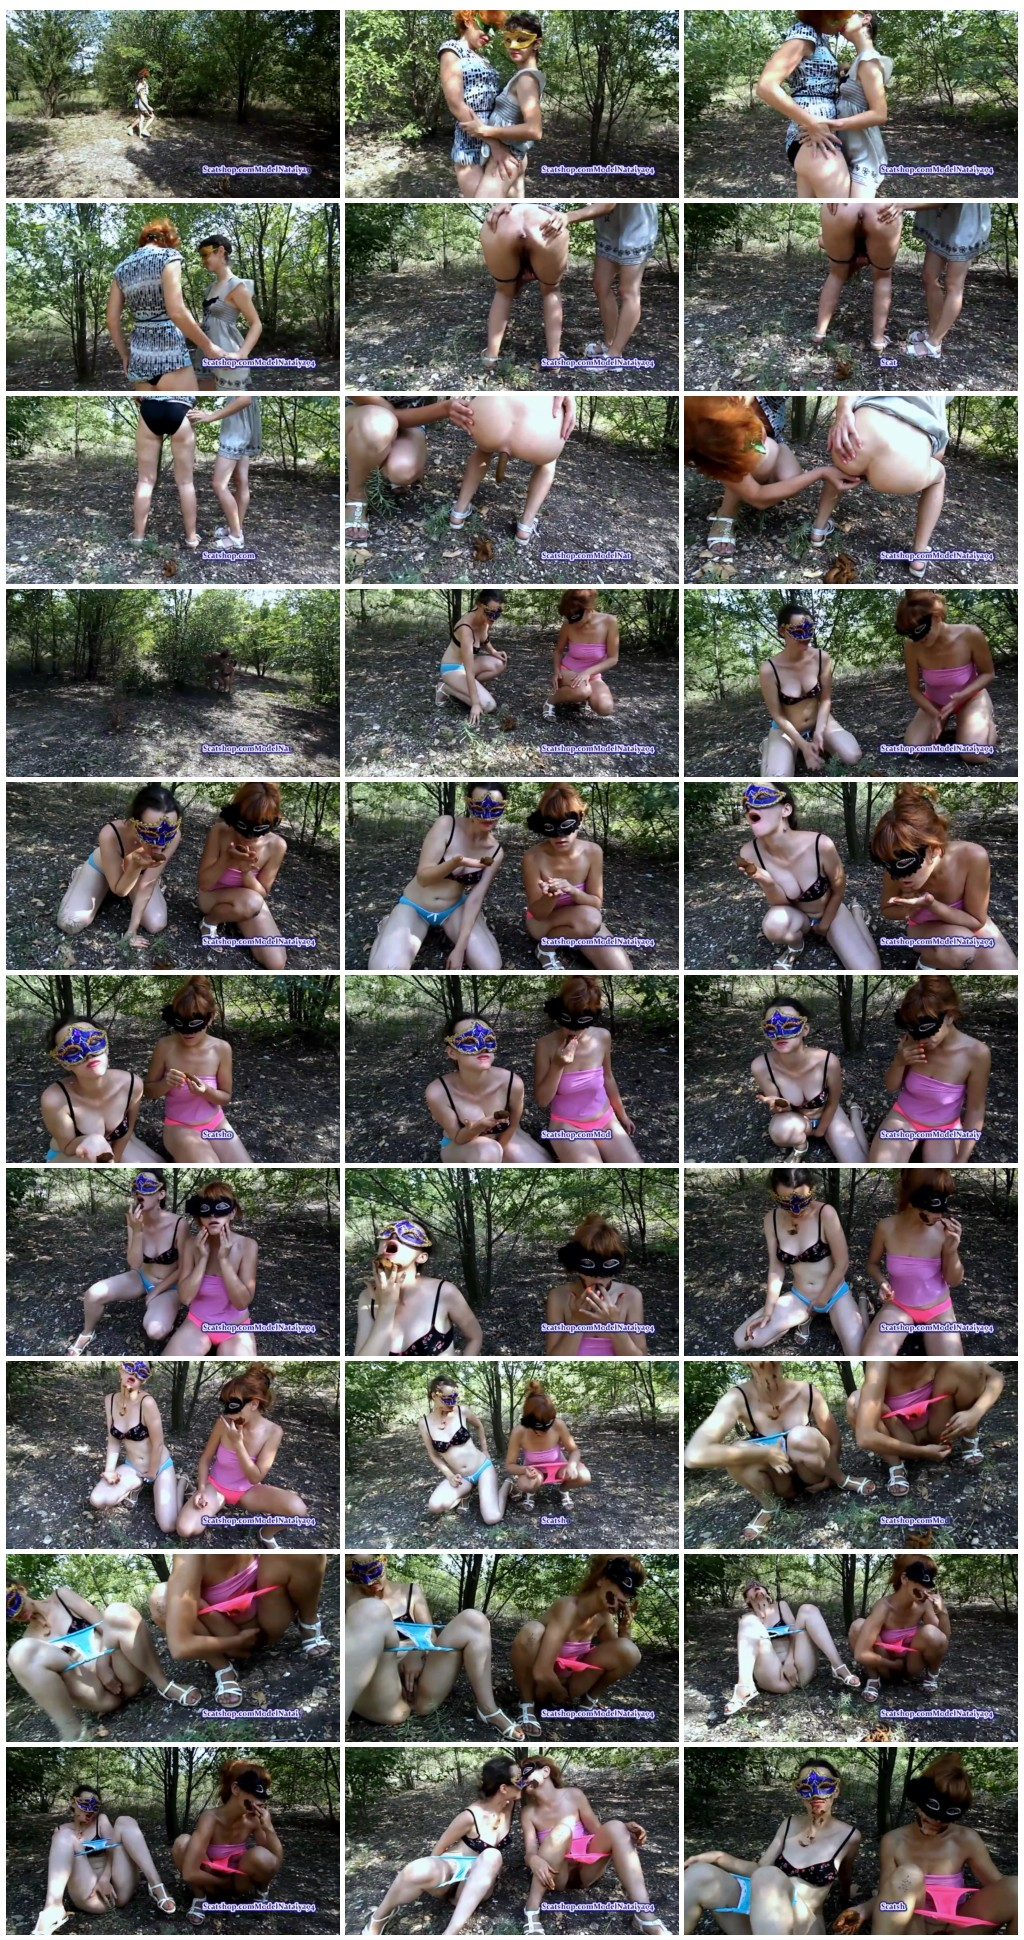 Two girls masturbate with shit outdoor On shittytube [Scat Lesbians, shit, defecation, pissing, Smearing, Eat shit, Masturbation]